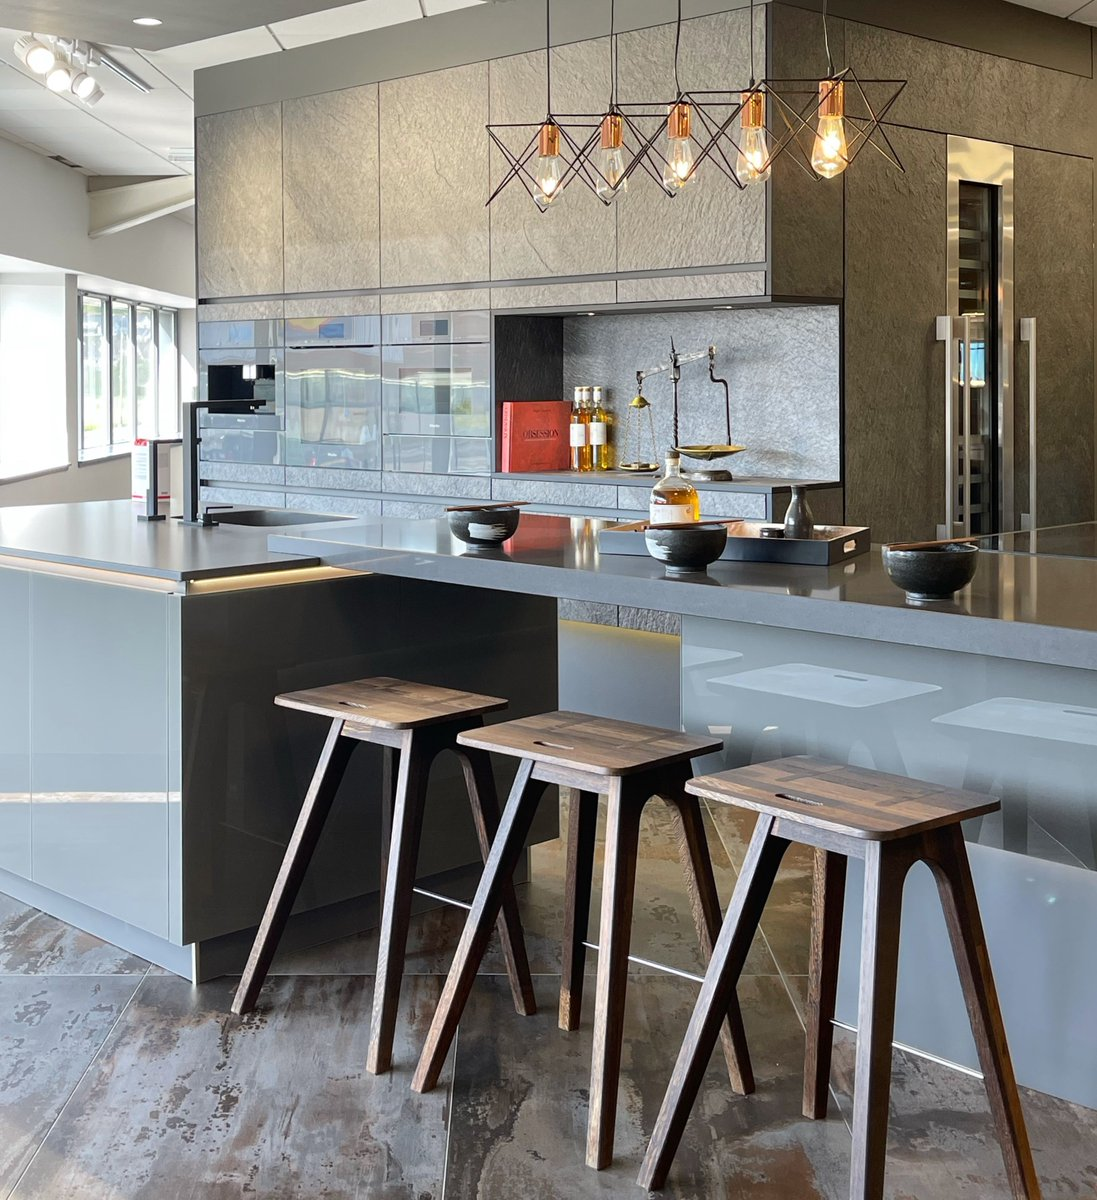 Silestone Marengo worktops and carbon neutral Dekton Trilium flooring complement each other perfectly in this stunning kitchen where metallic and wood textures meet. Thanks for sharing bit.ly/LaingsKBB